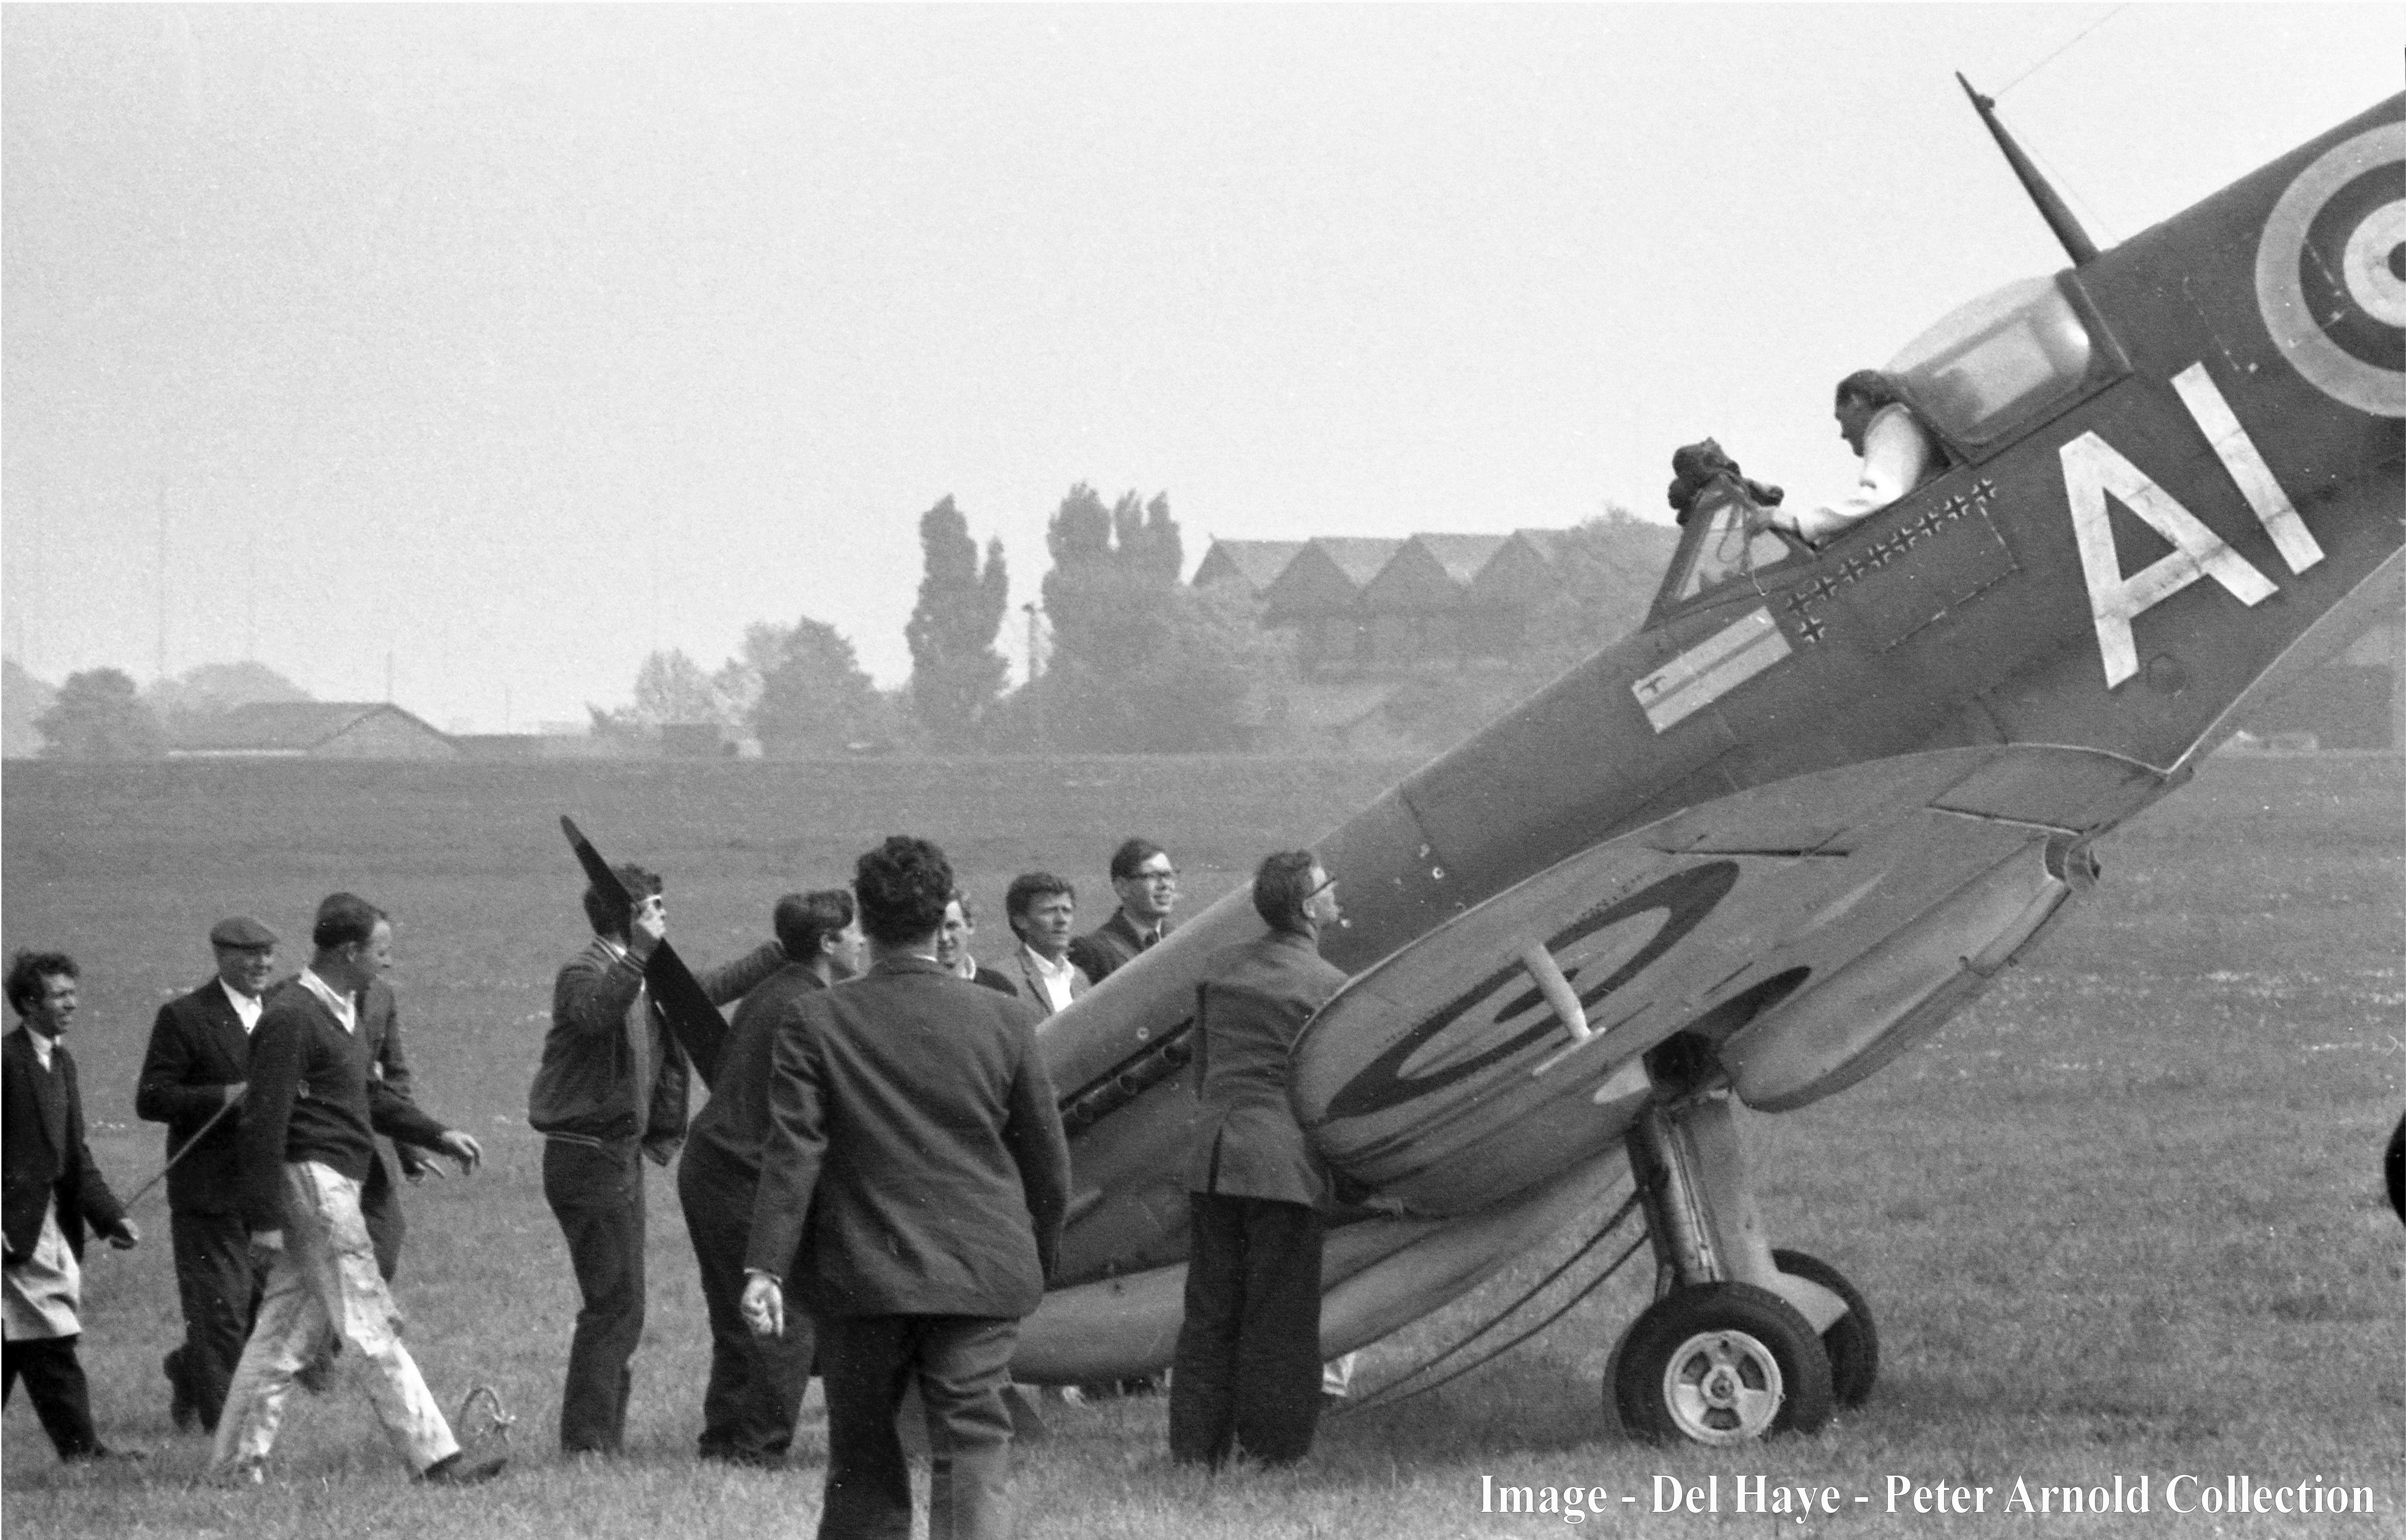 There was an accident with Mann's Spitfire during the filming of the Battle of Britain when the plane tipped onto its nose. (Peter Arnold)